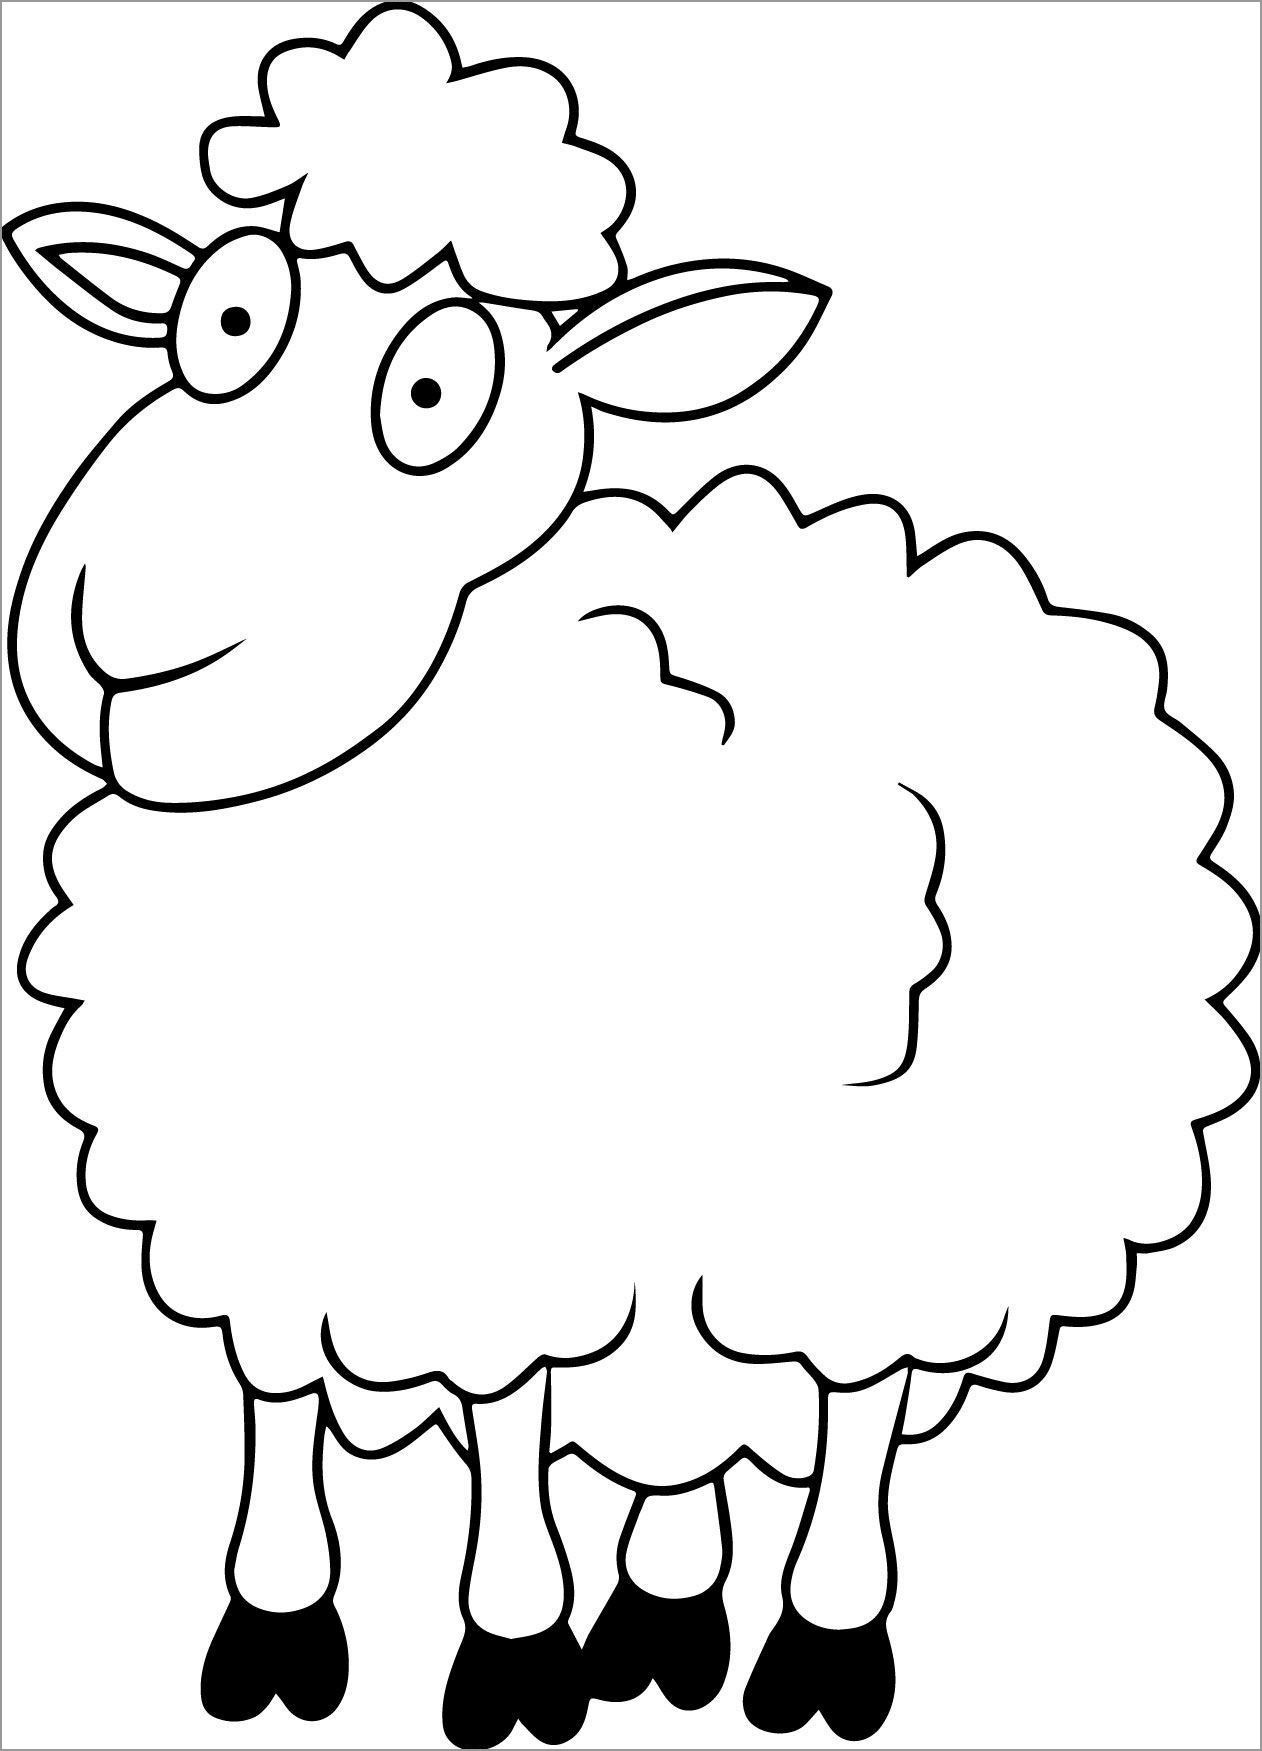 Lion Lamb Coloring Page in 2020 | Animal coloring pages ...